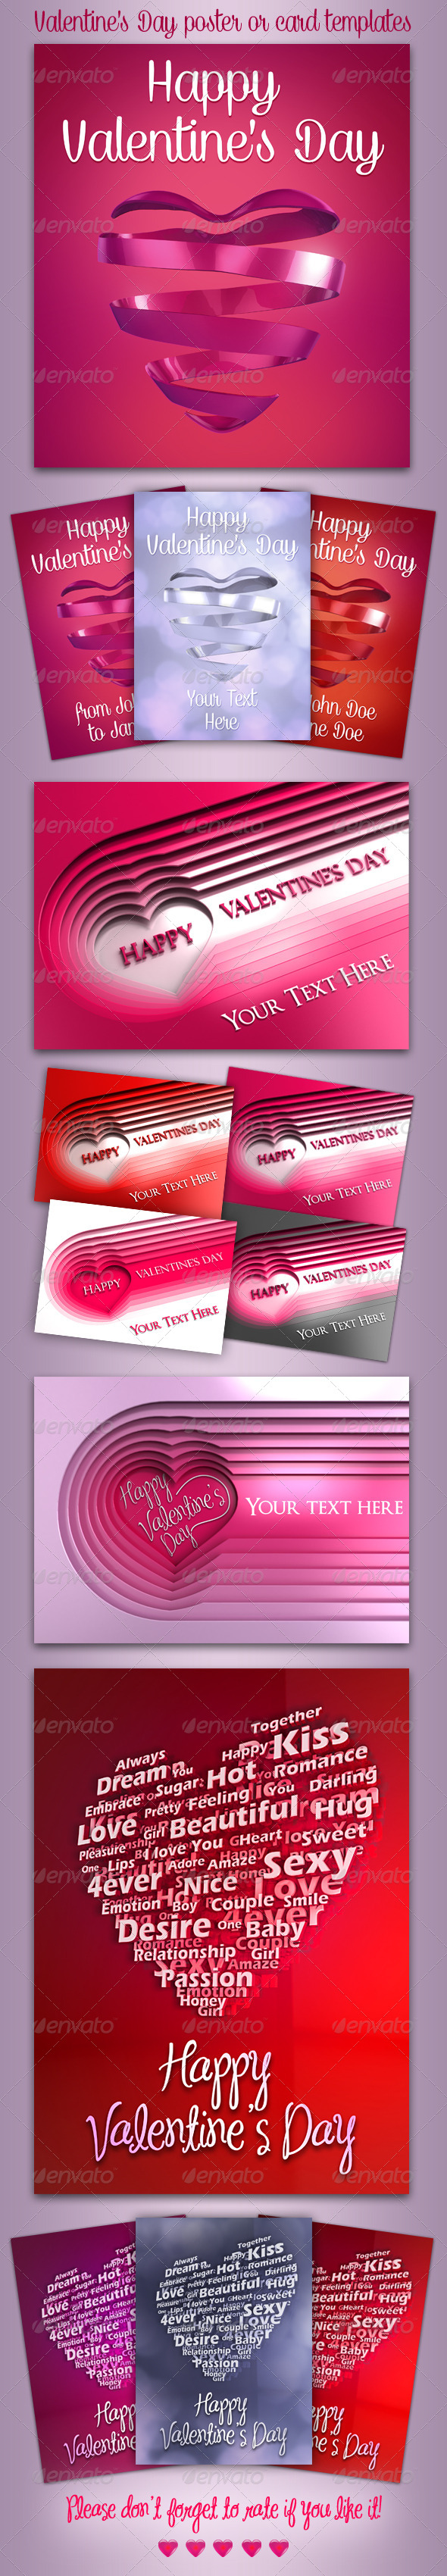 Valentine's Day Templates - Holiday Greeting Cards